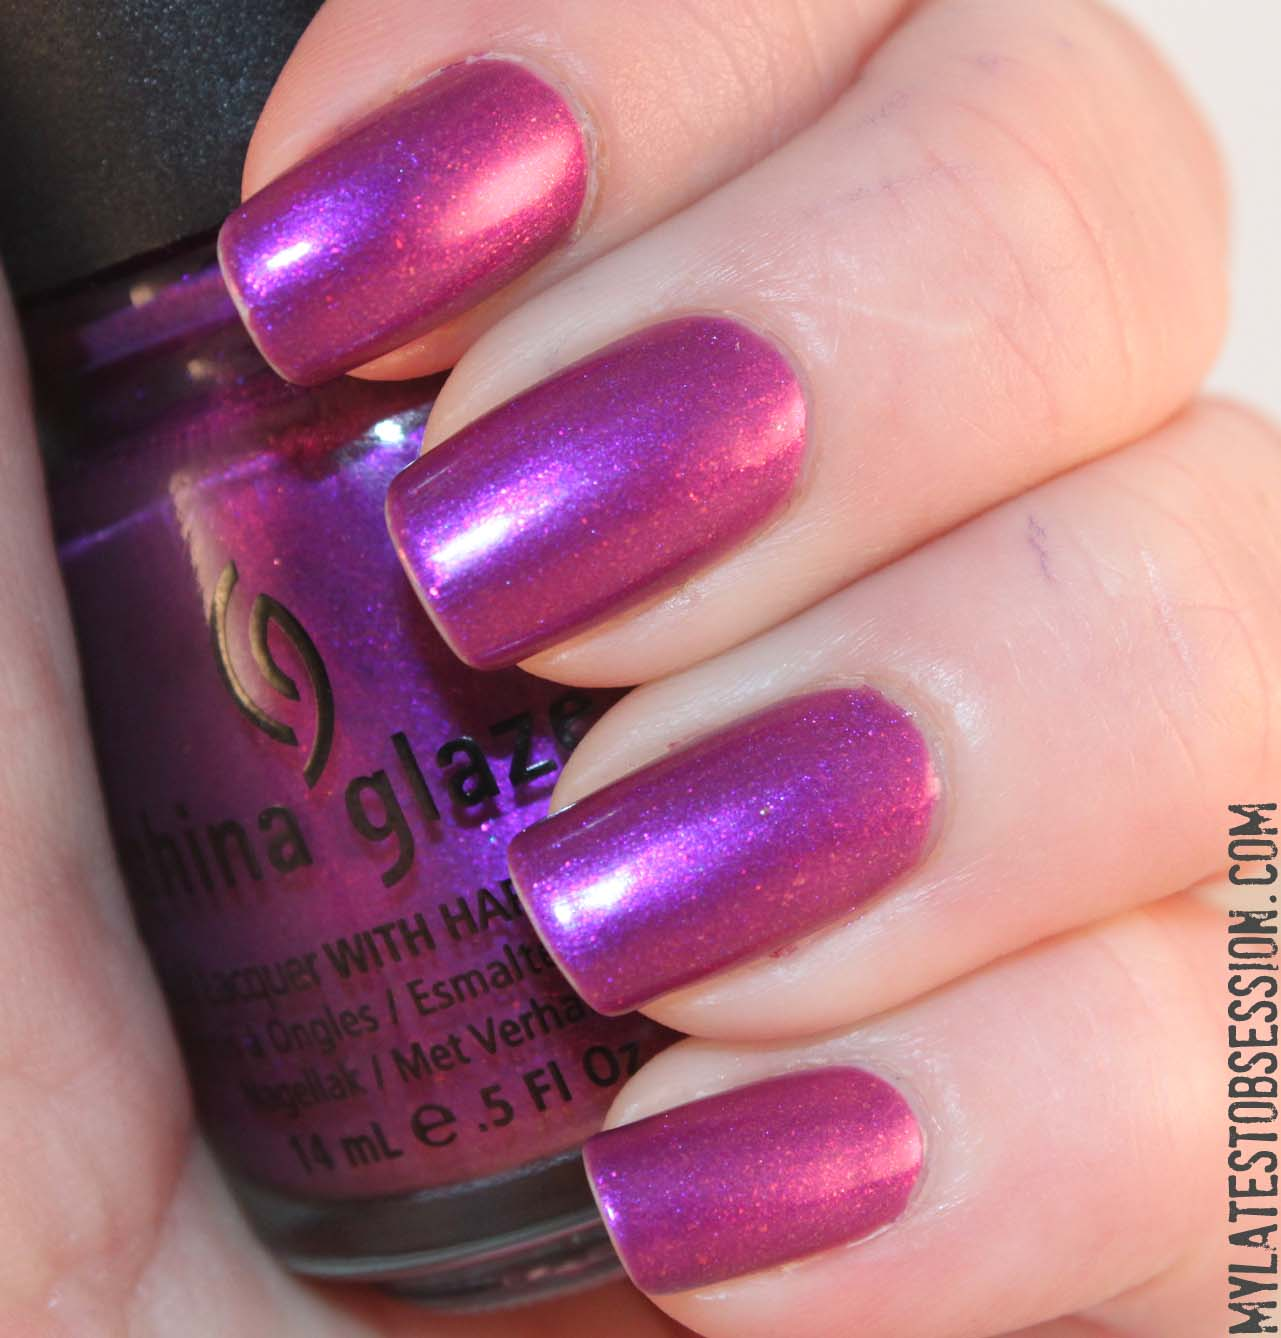 China Glaze - Senorita Bonita